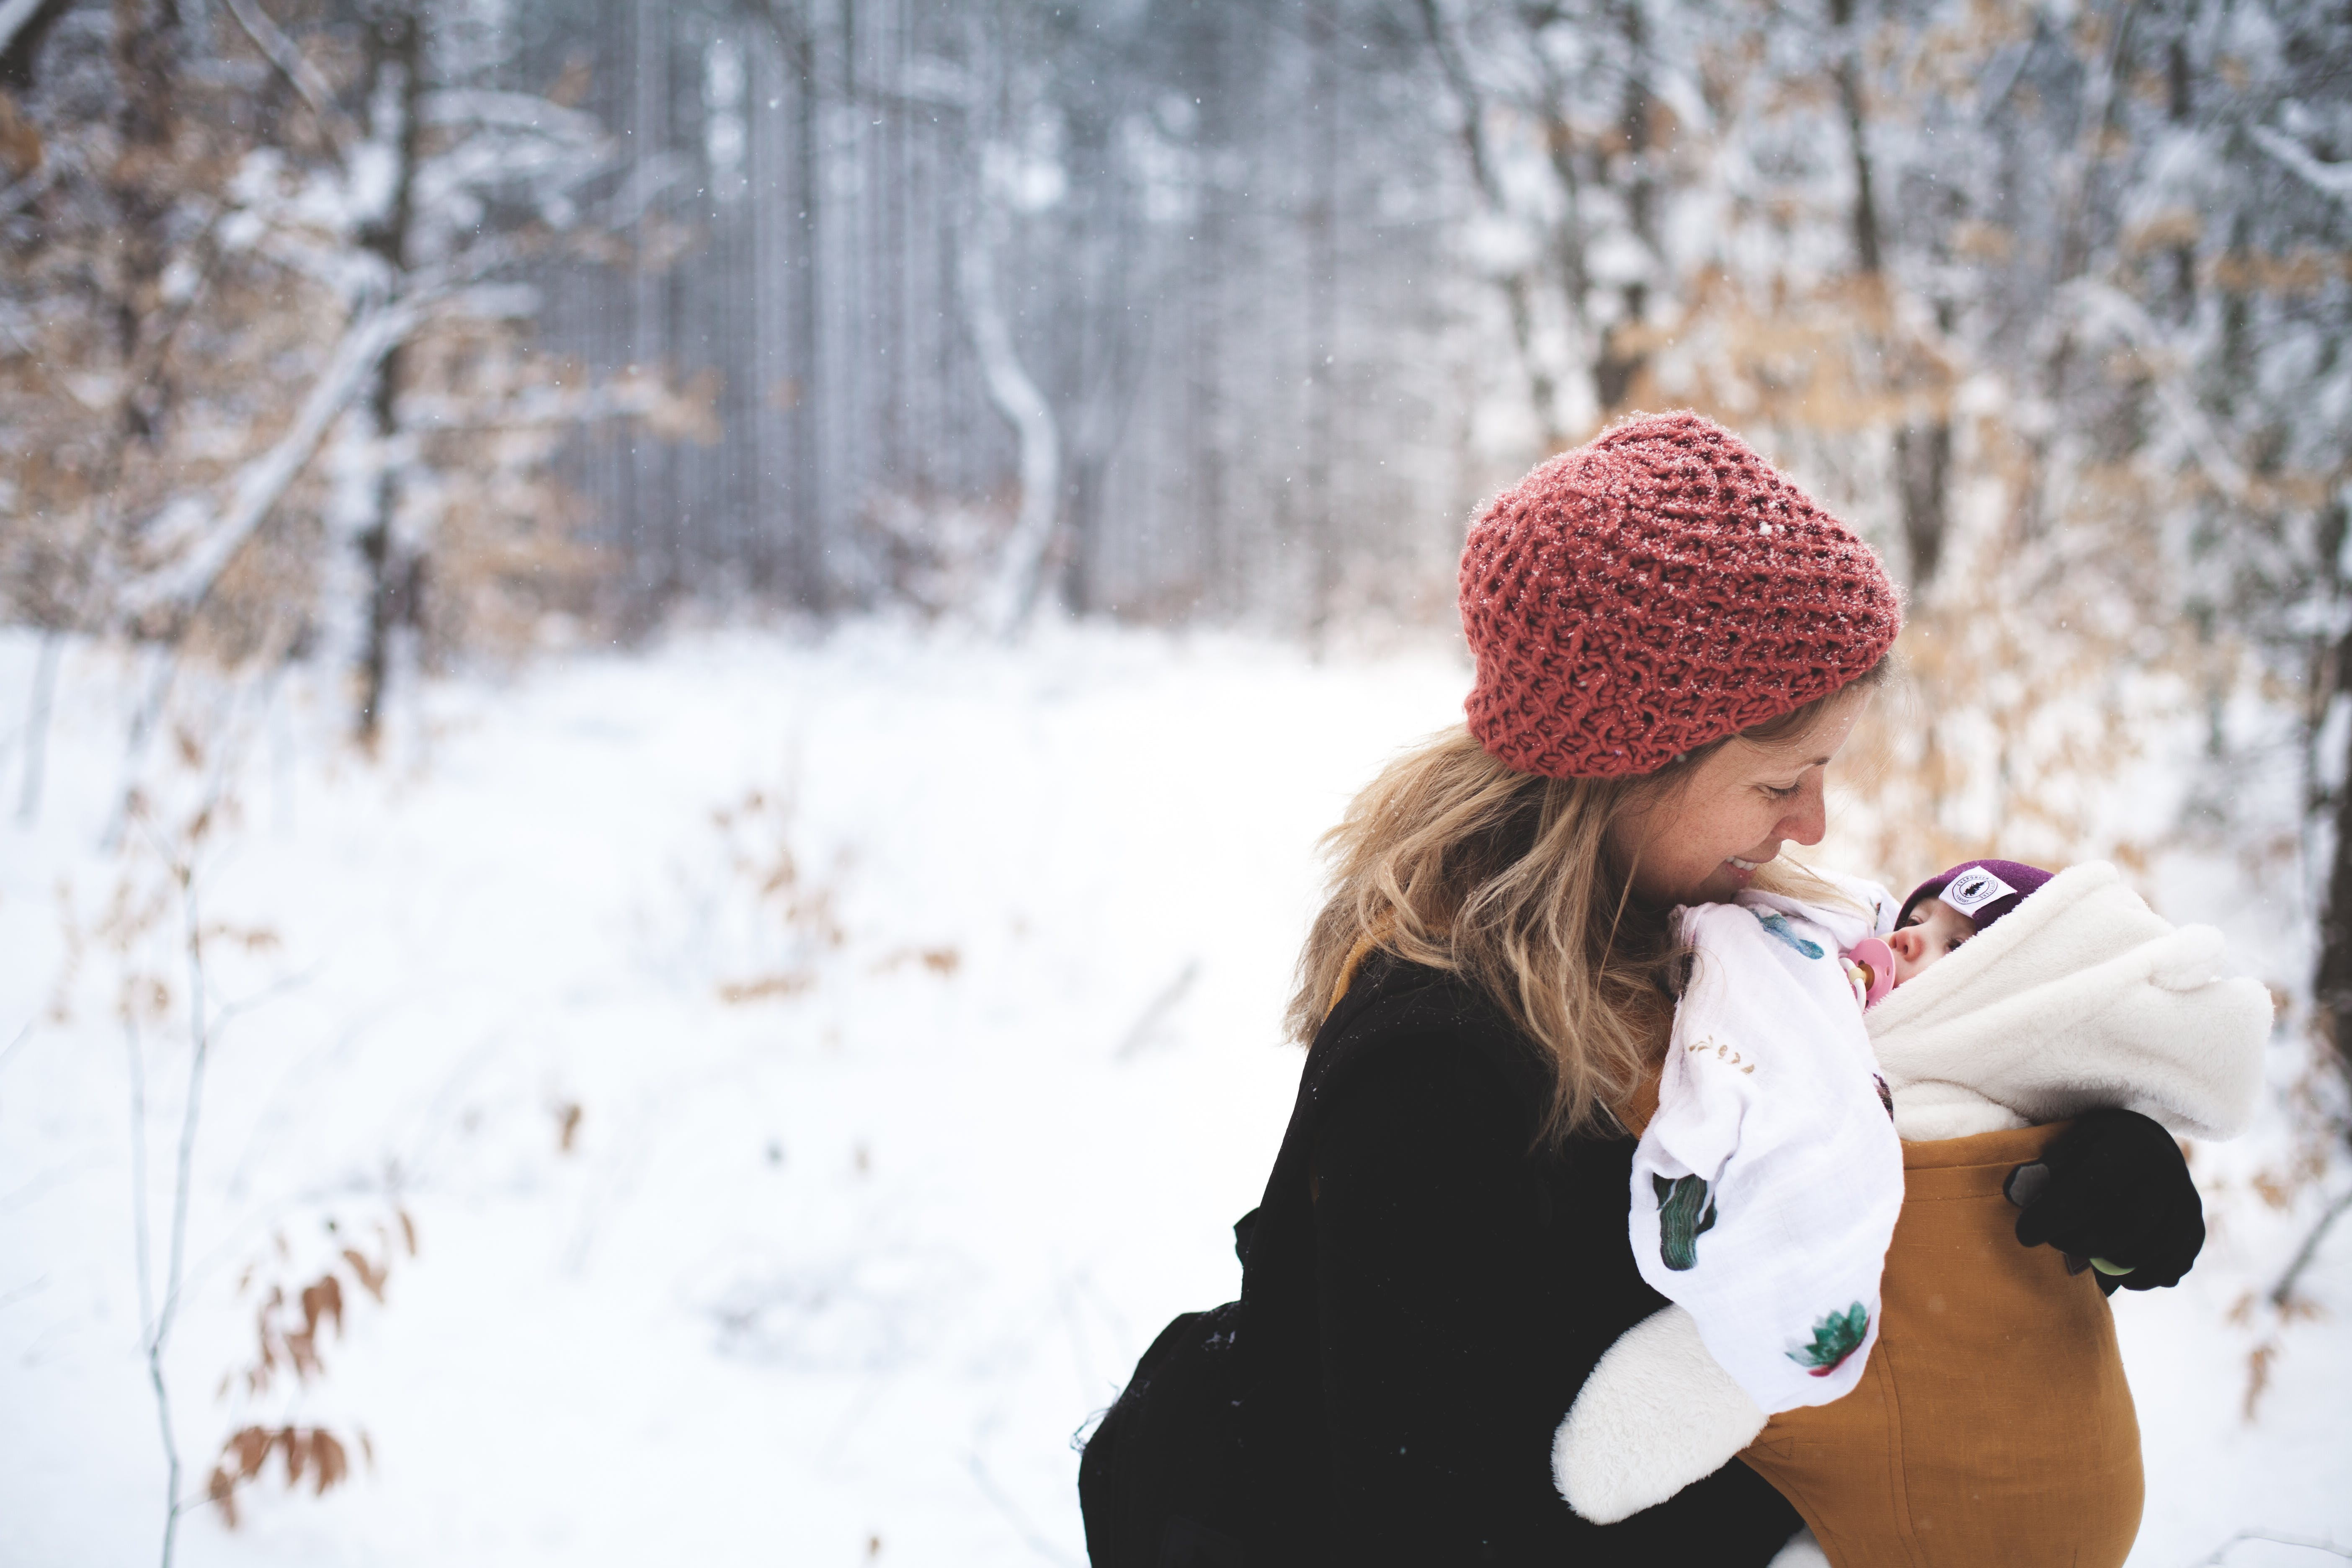 Woman in Red Knitted Cap and Black Top Holding Baby With Brown Carrier